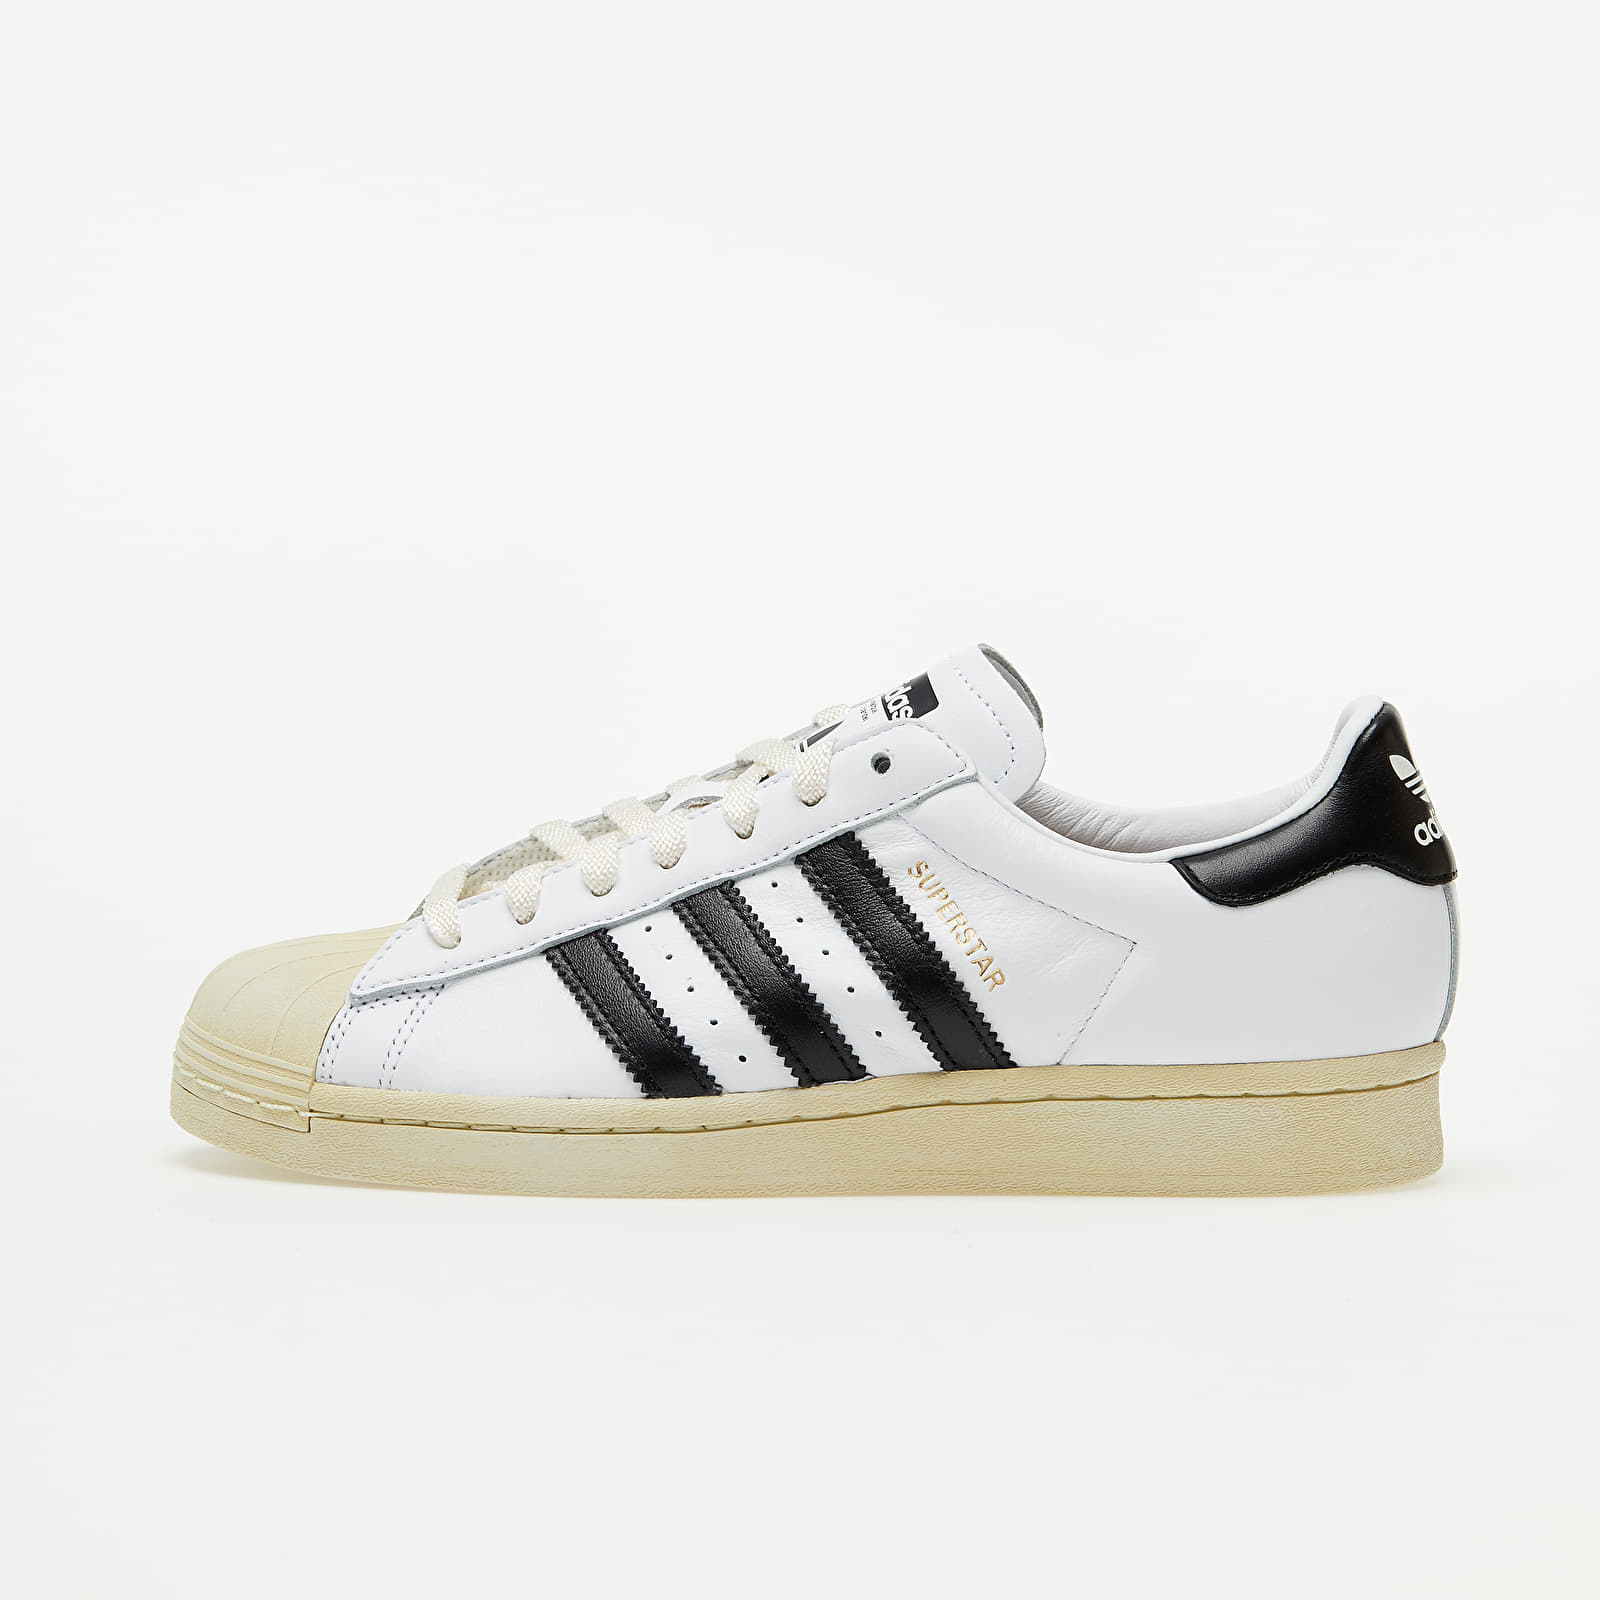 Férfi cipők adidas Superstar Ftw White/ Core Black/ Blue